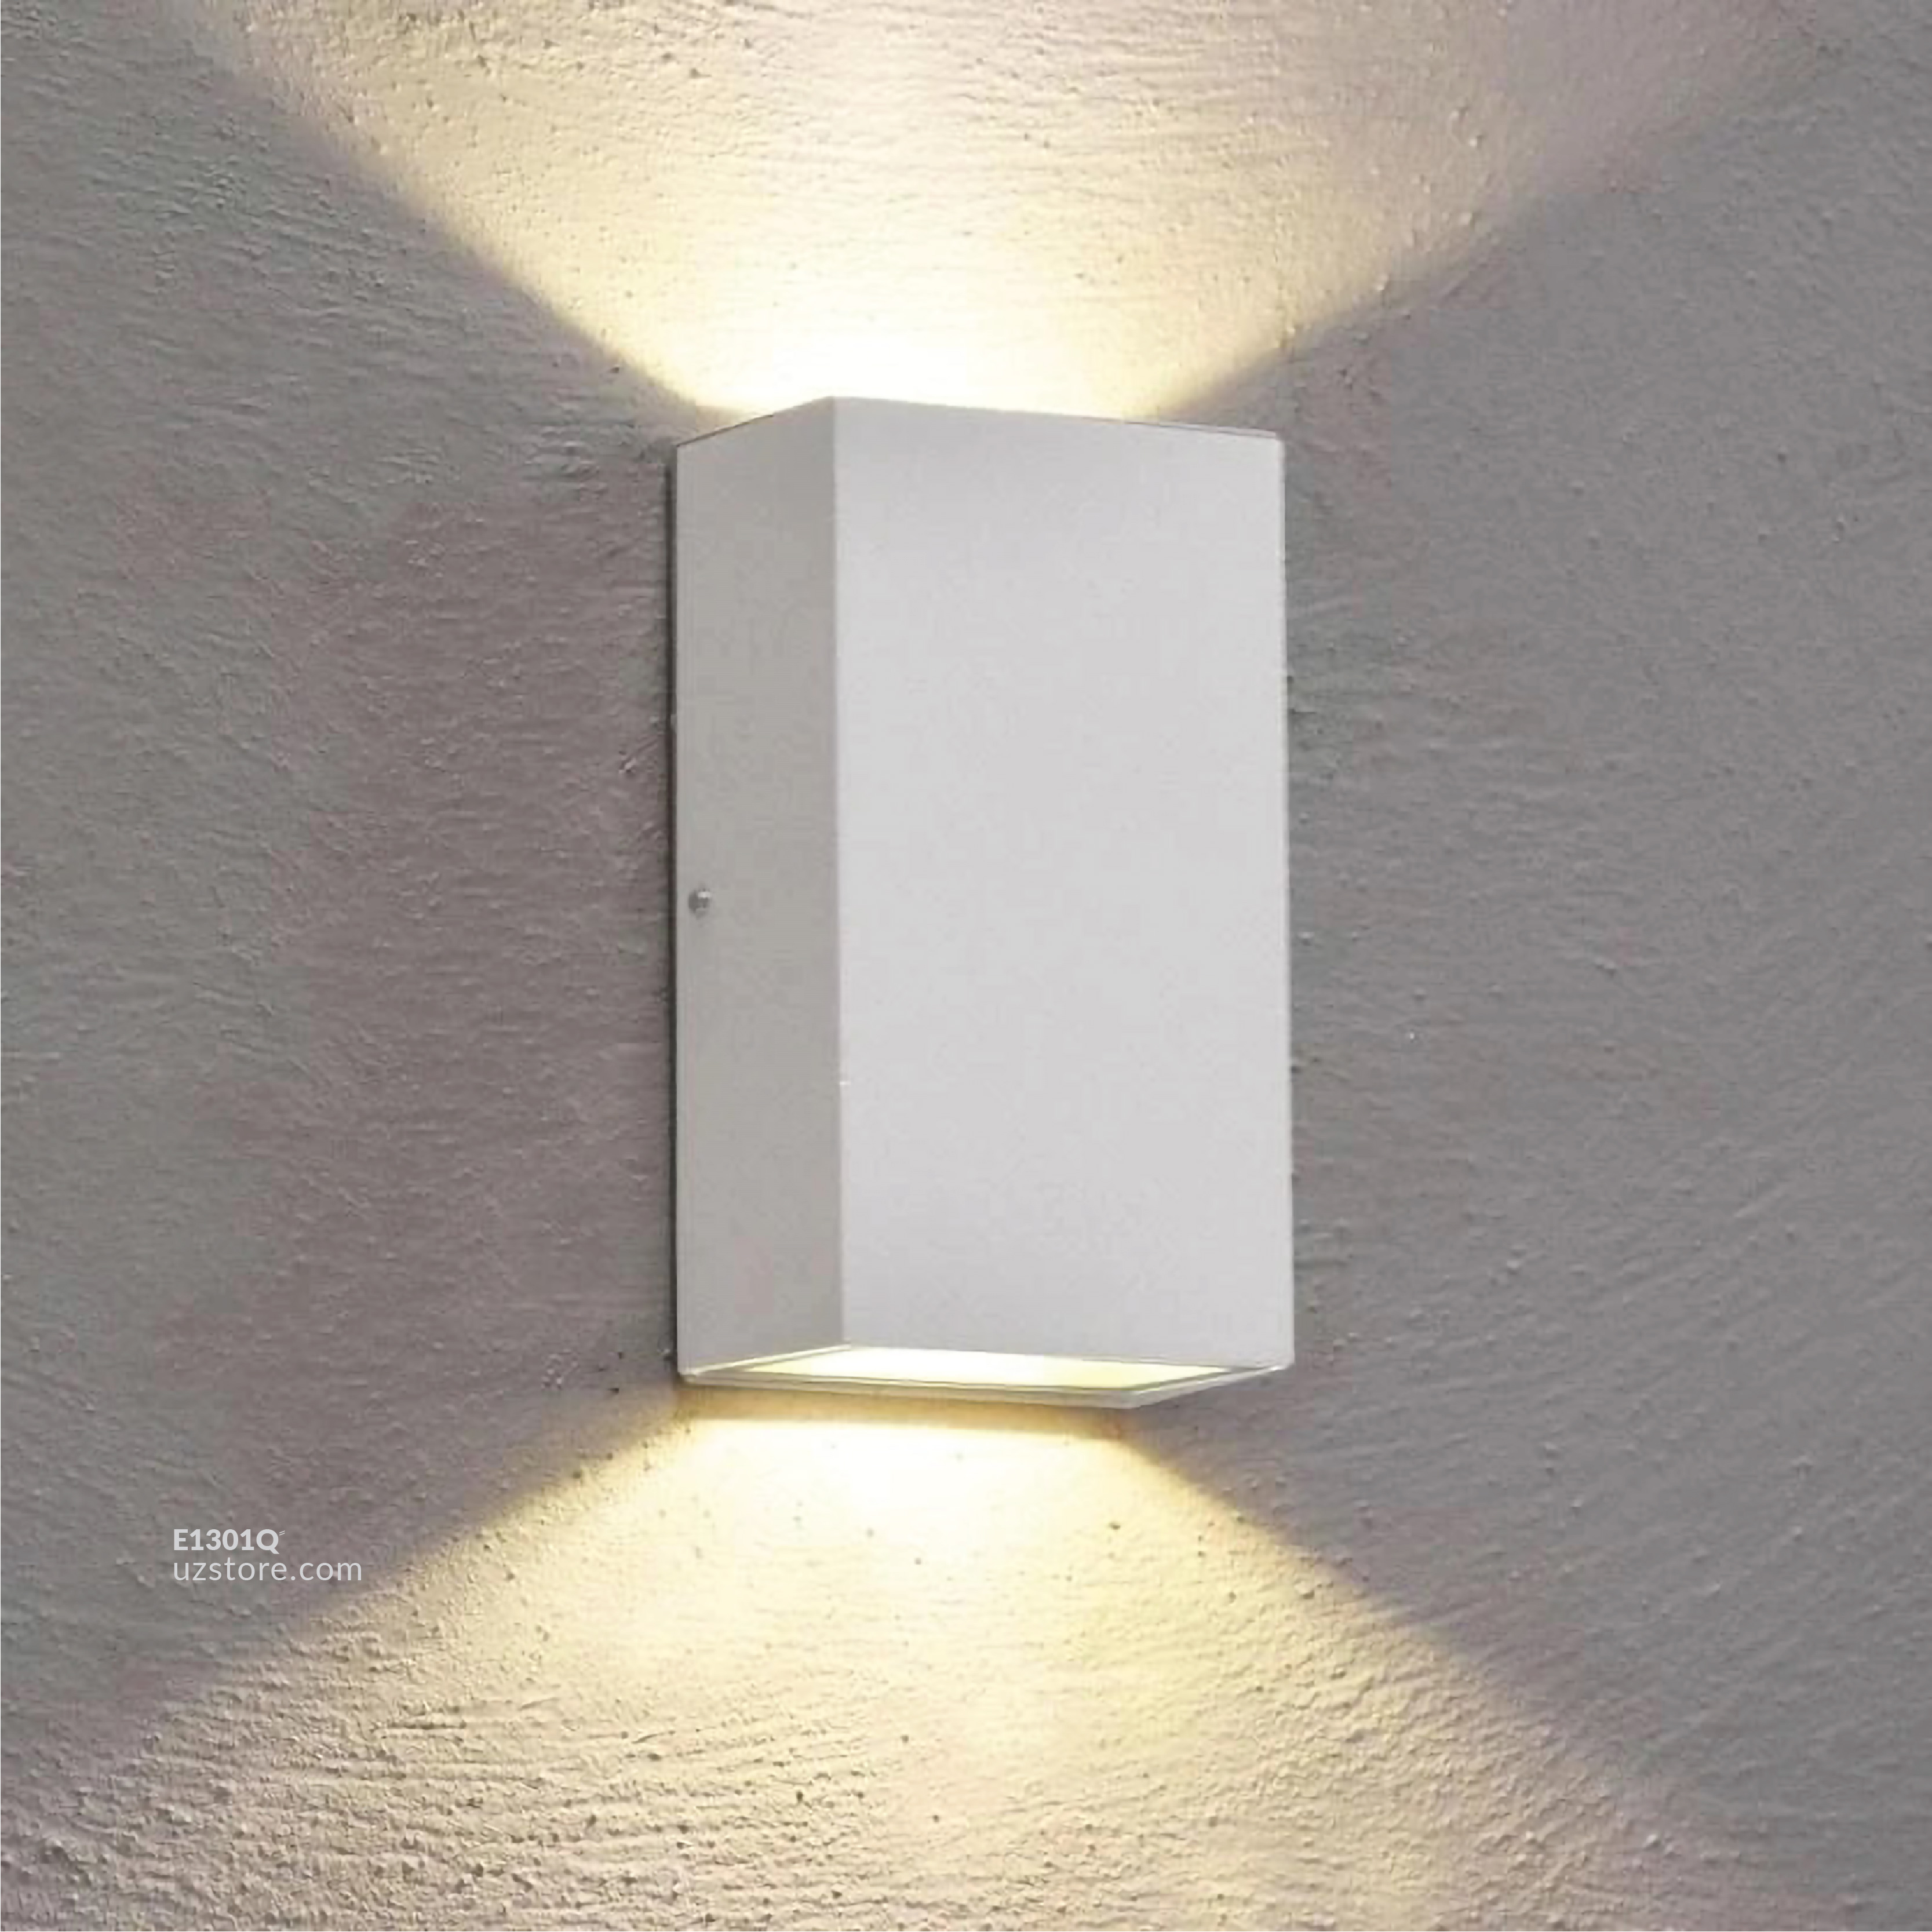 LED Outdoor Wall LIGHT W19 WW WHITE